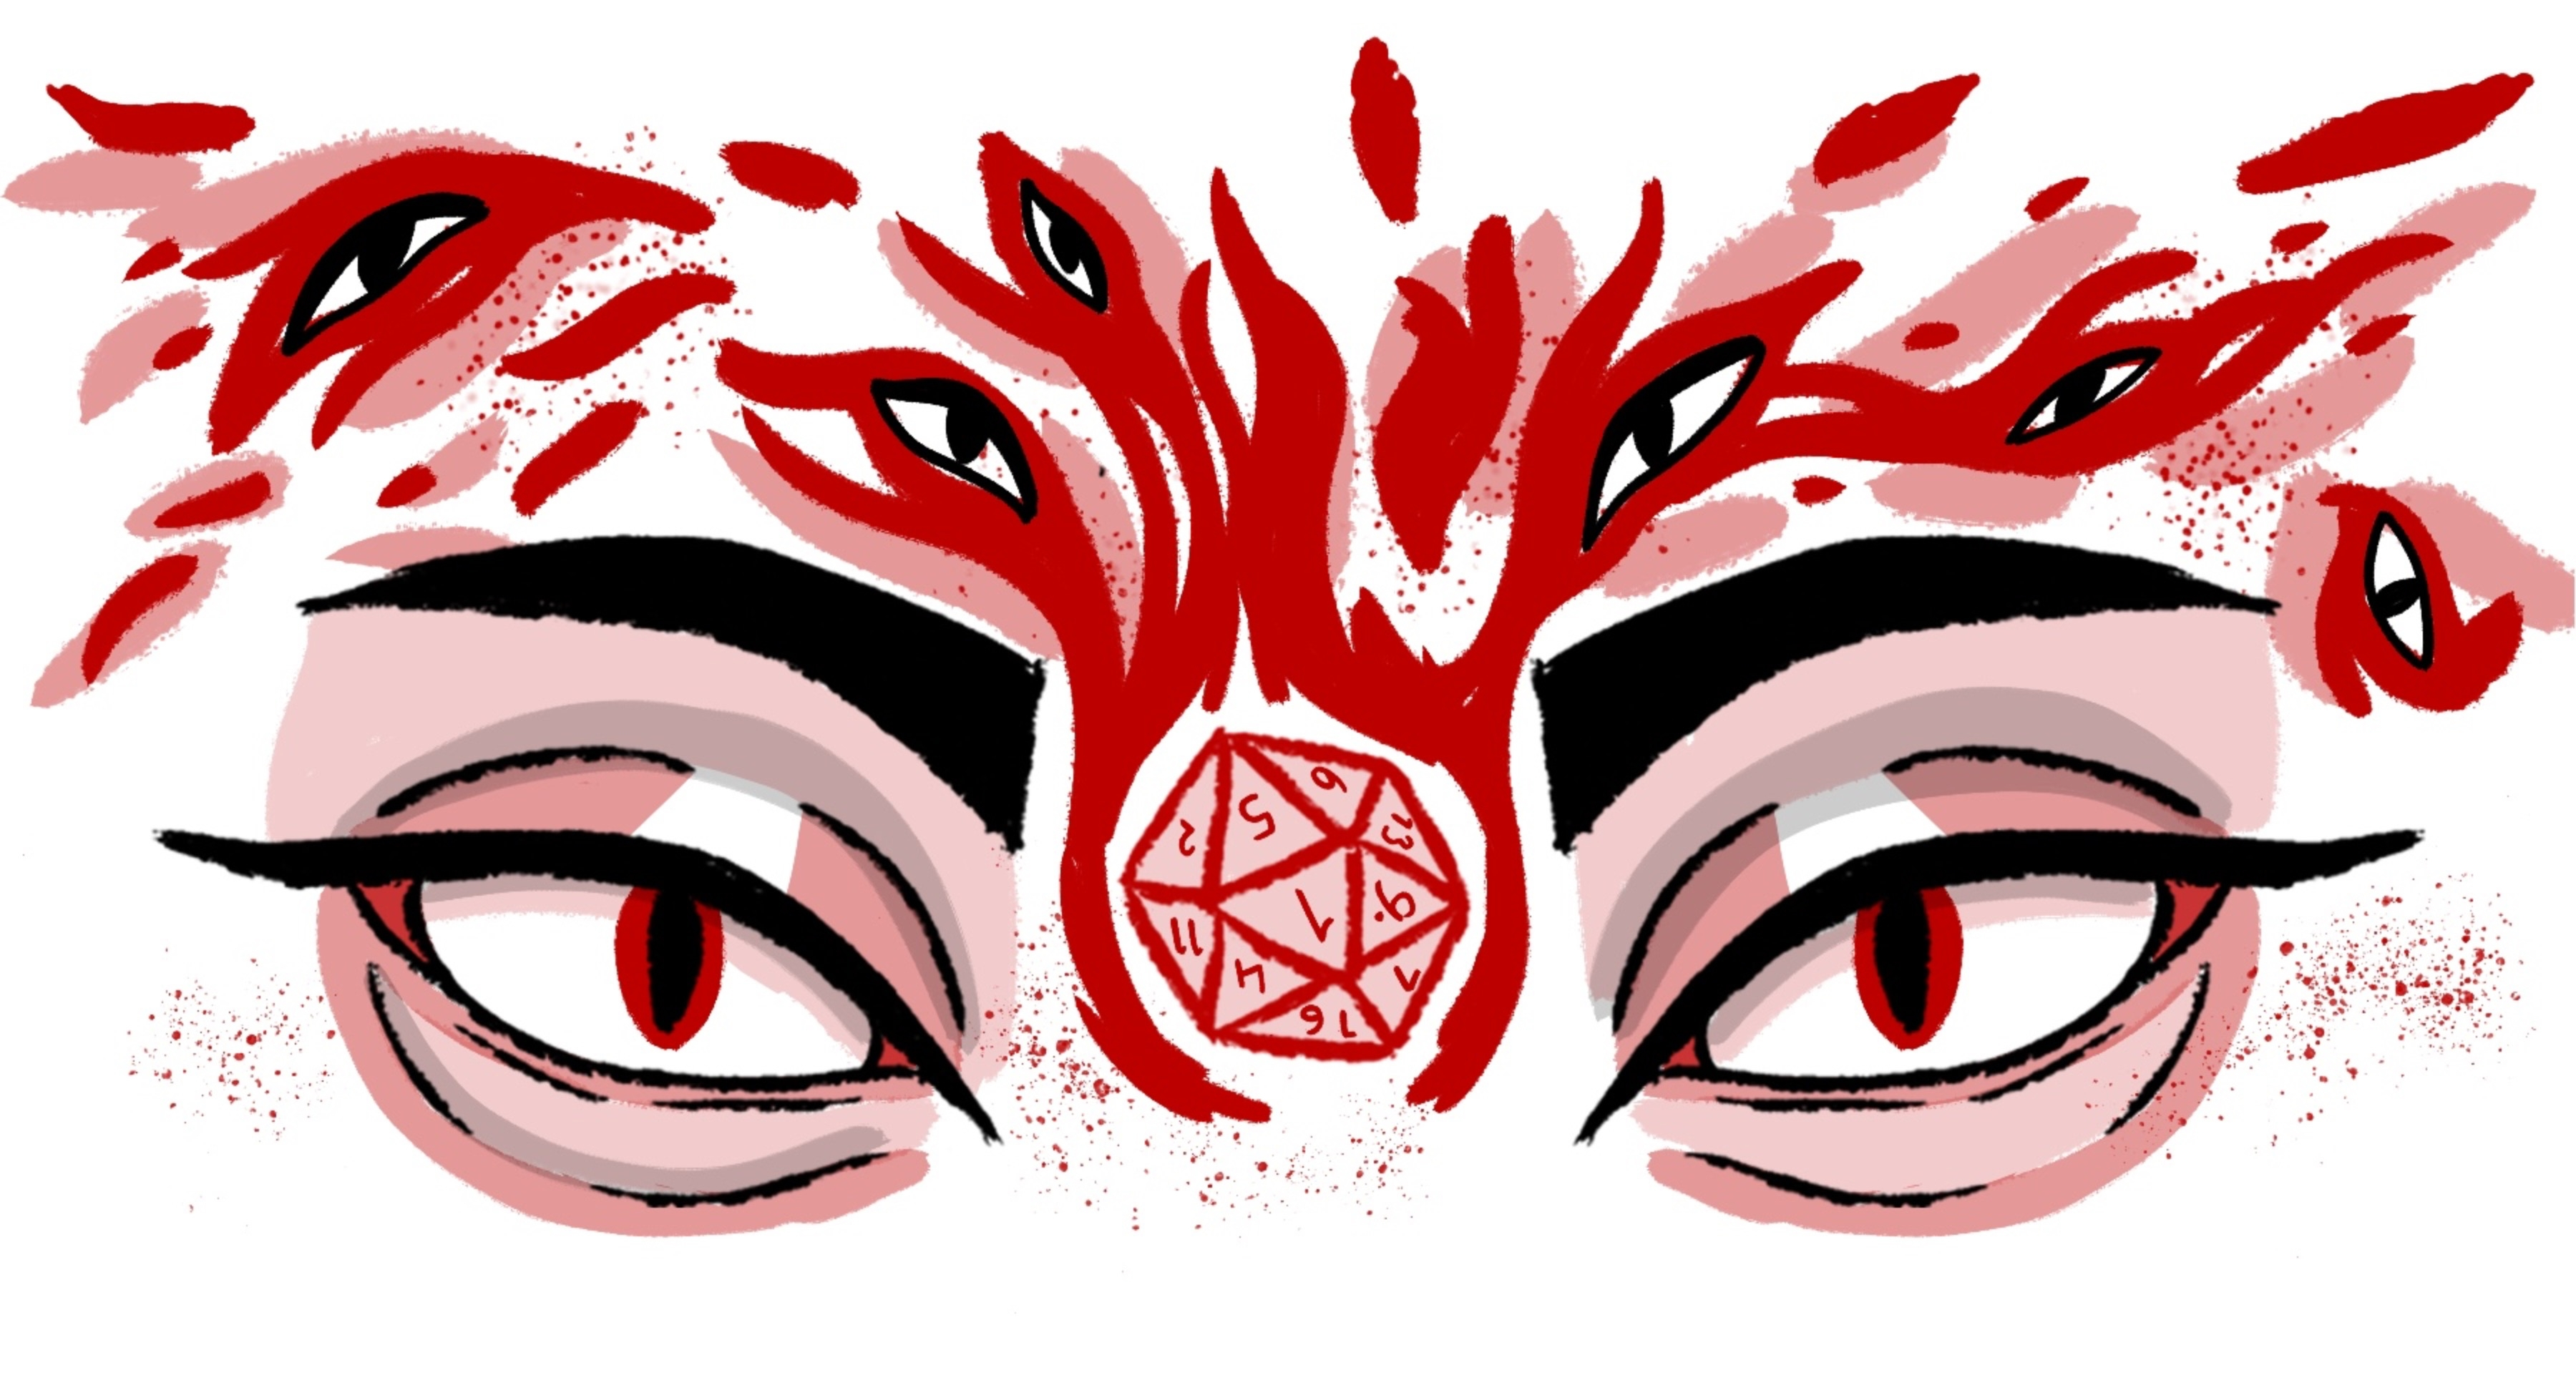 An illustration from DWTD. Two eyes with sharp eyebrows and fierce winged eyeliner stare at the view. A d20 is suspended between these eyes, surrounded by red flames with spread up and around the eyes. In the flames are more eyes. All of the eyes have snake-like slit pupils.